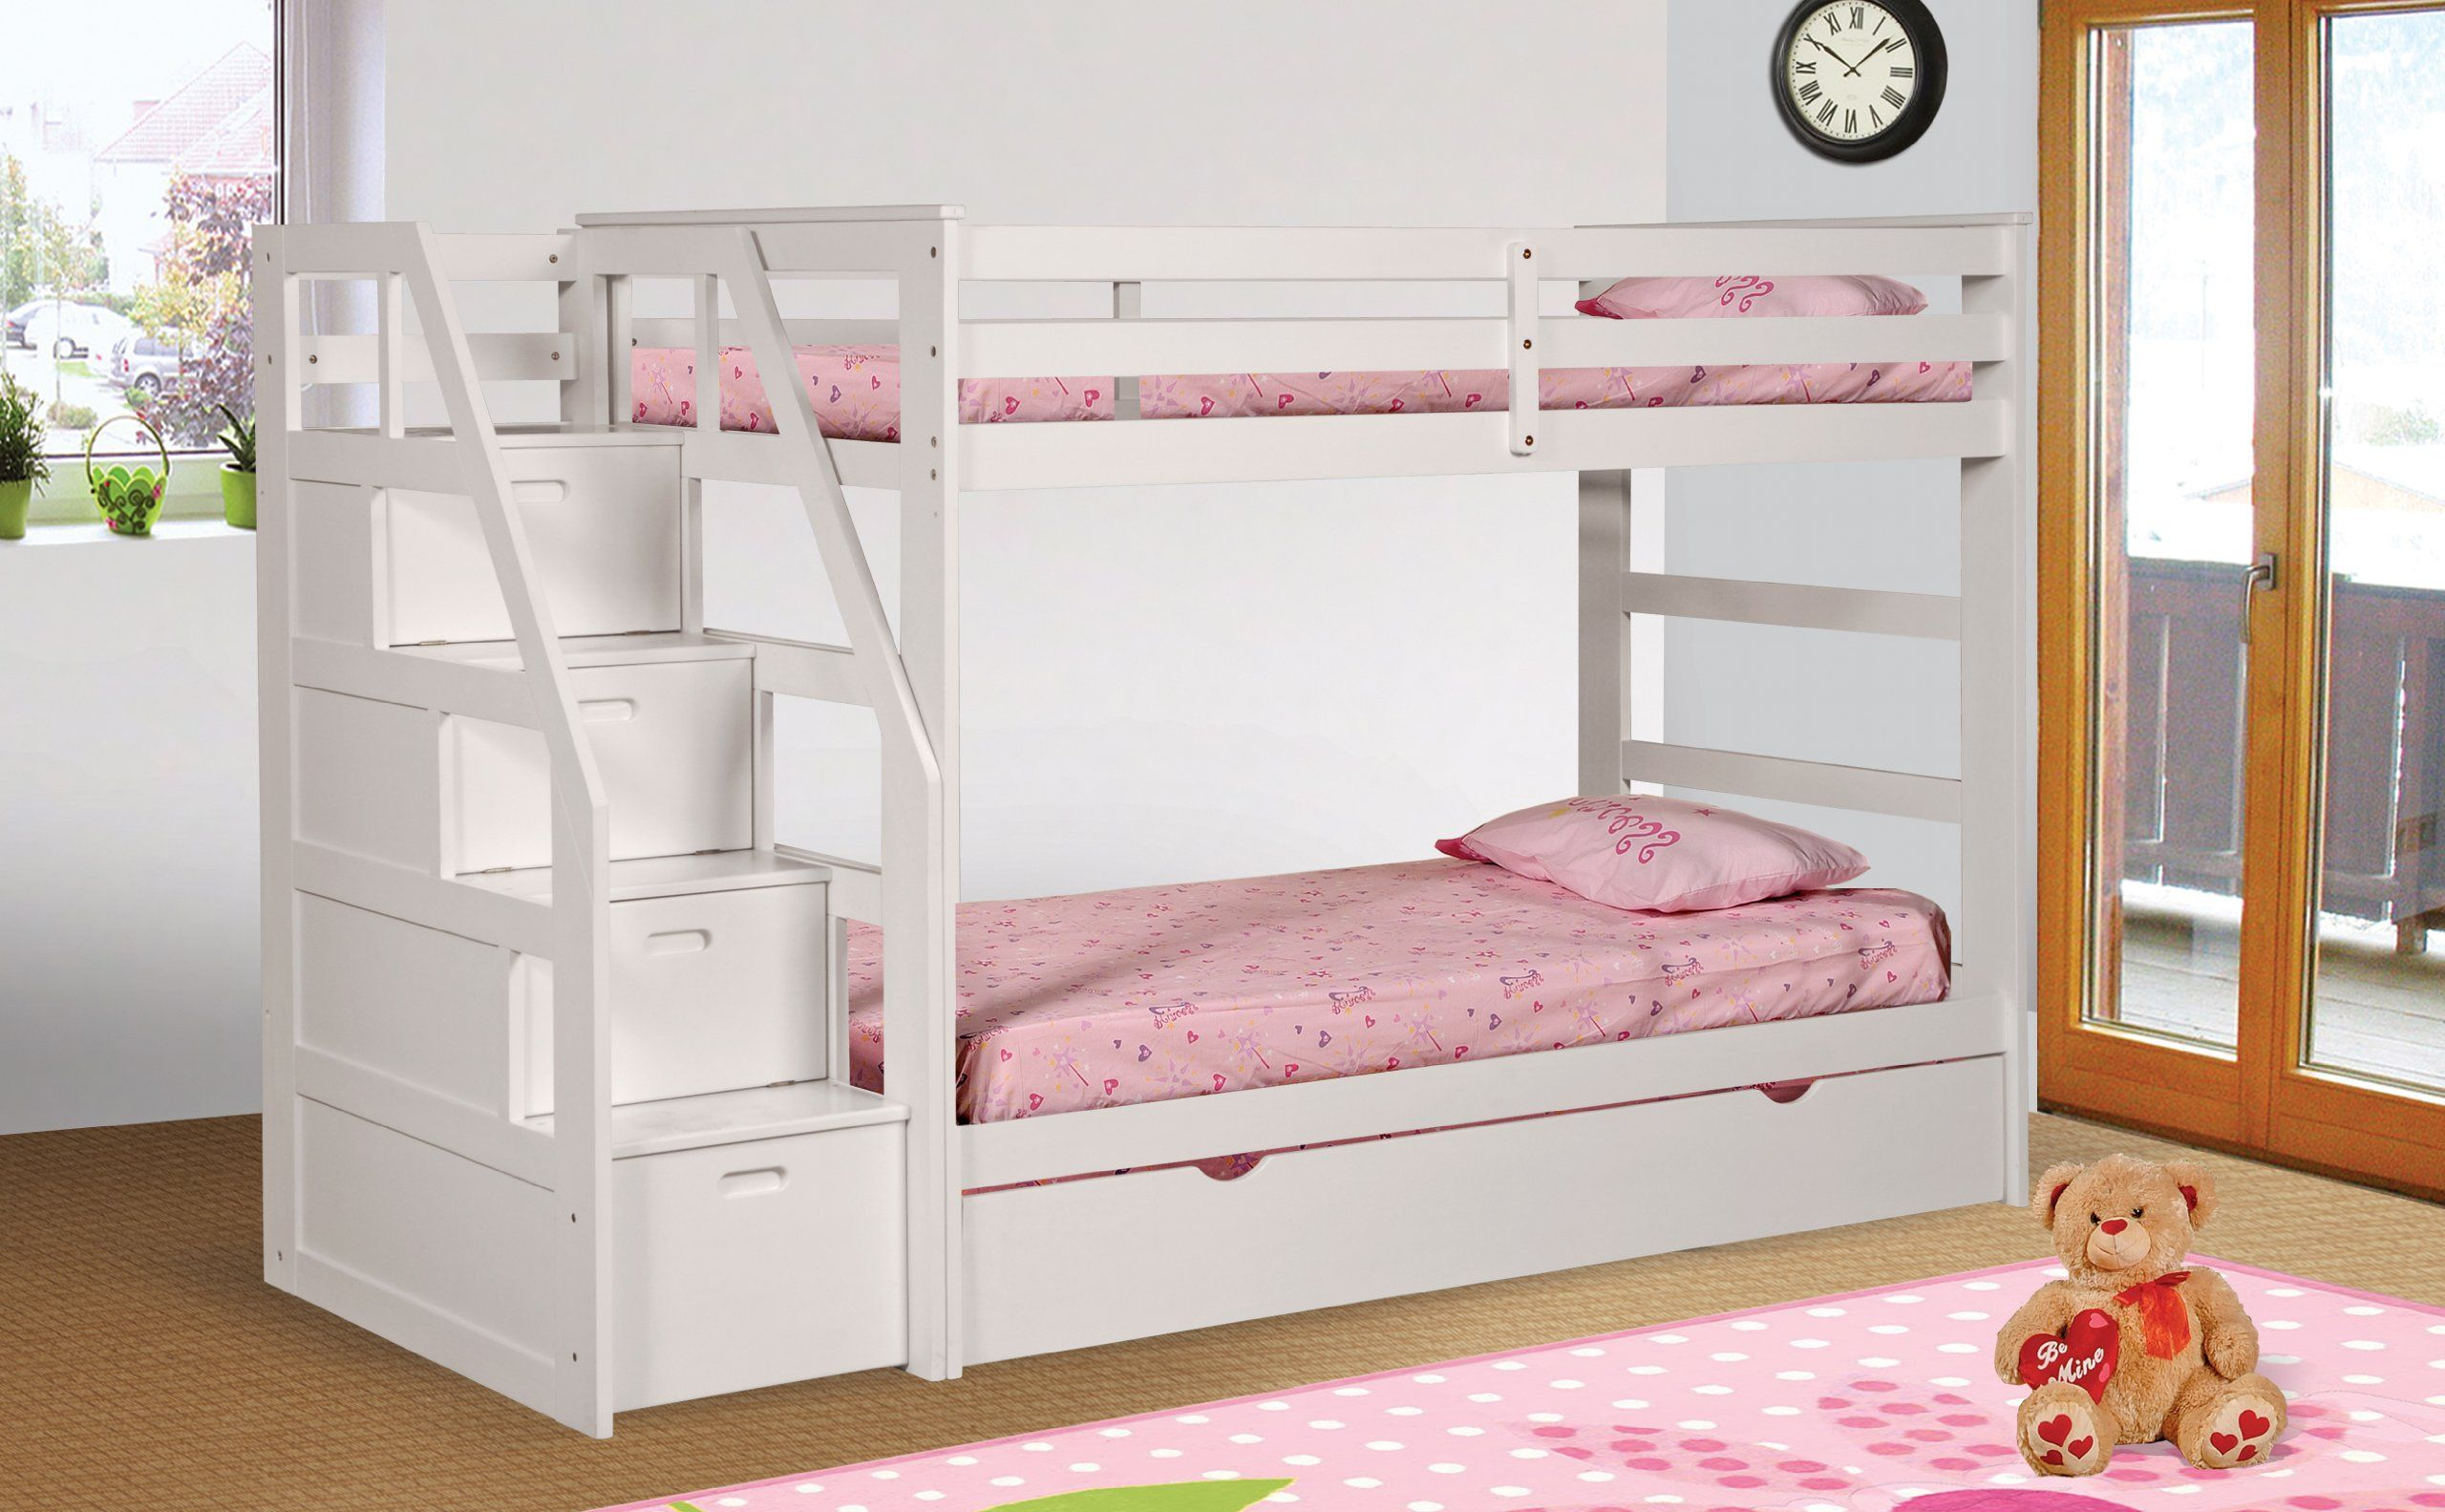 Twin Twin Bunk Bed With Twin Trundle Amp Storage Steps White Finish Bunk Bed With Trundle Bunk Beds With Stairs Twin Bunk Beds